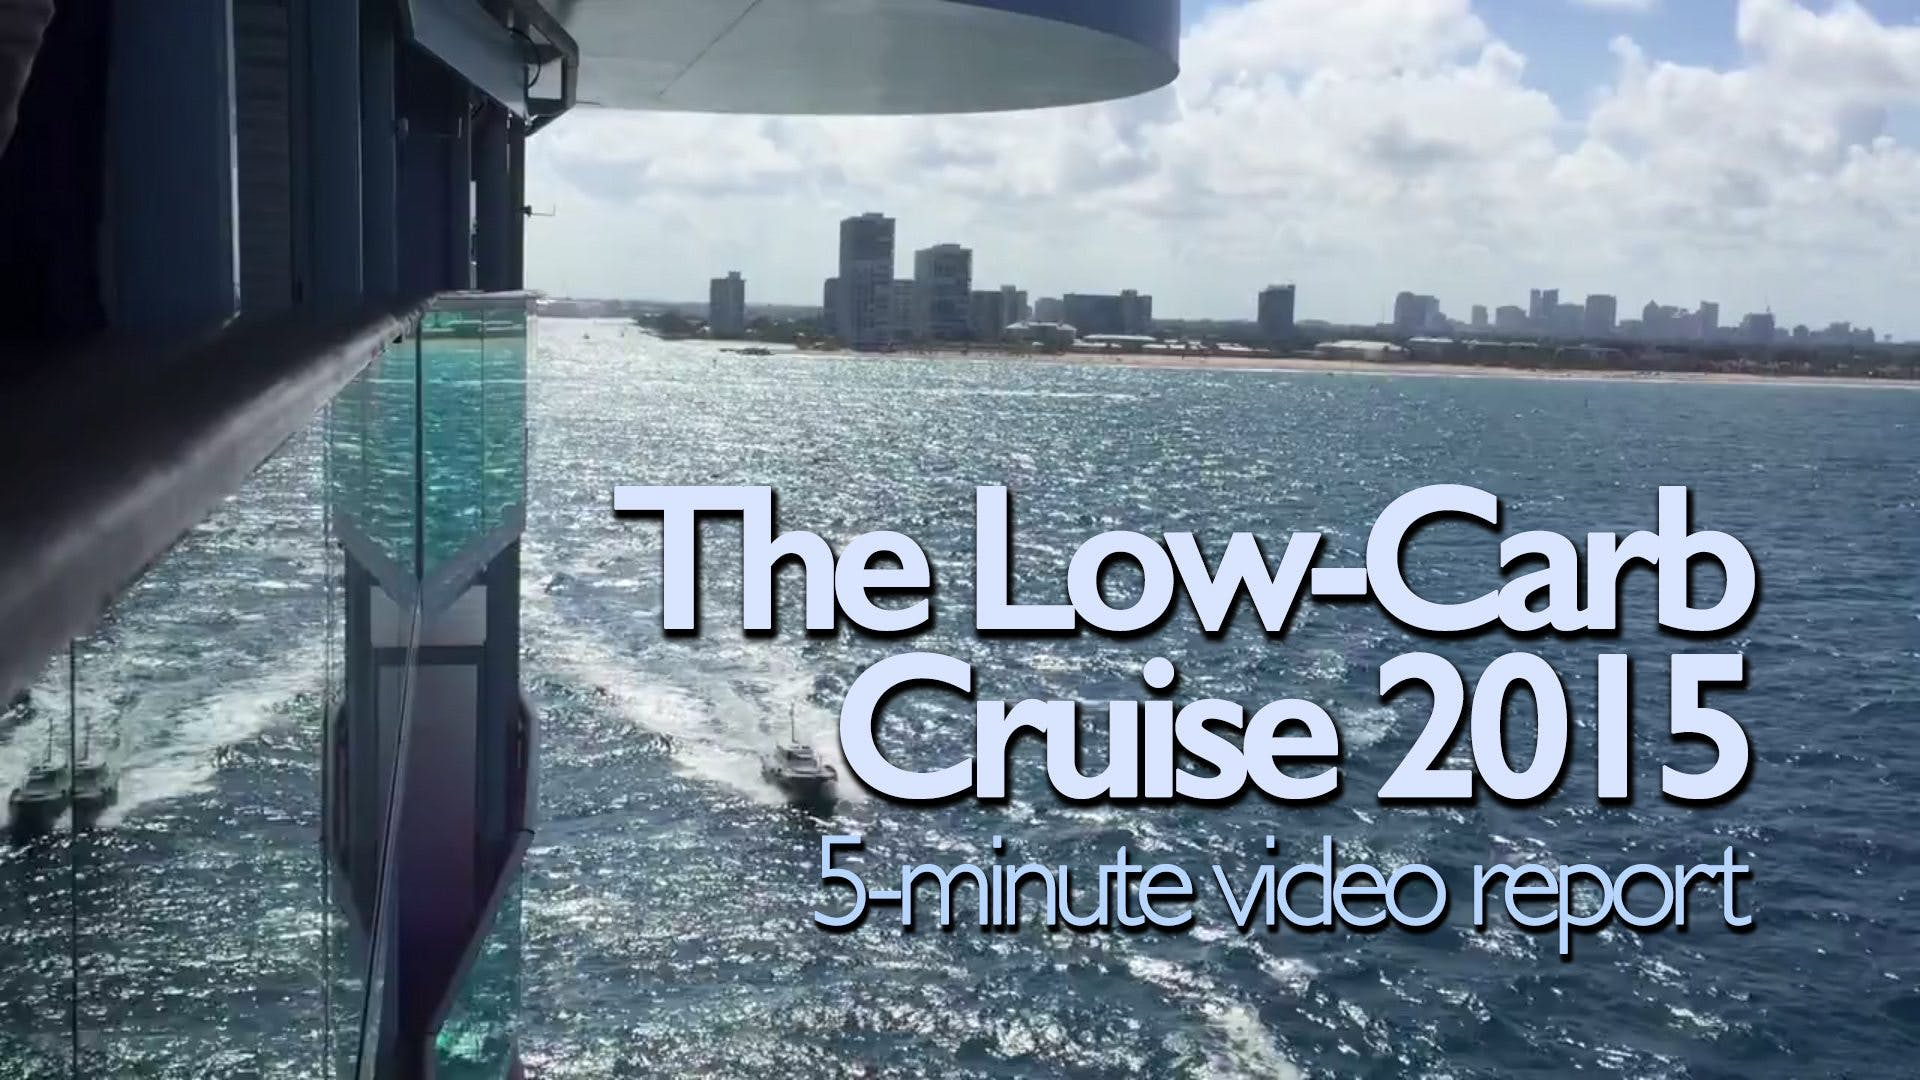 5-minute Report from the Low-Carb Cruise 2015